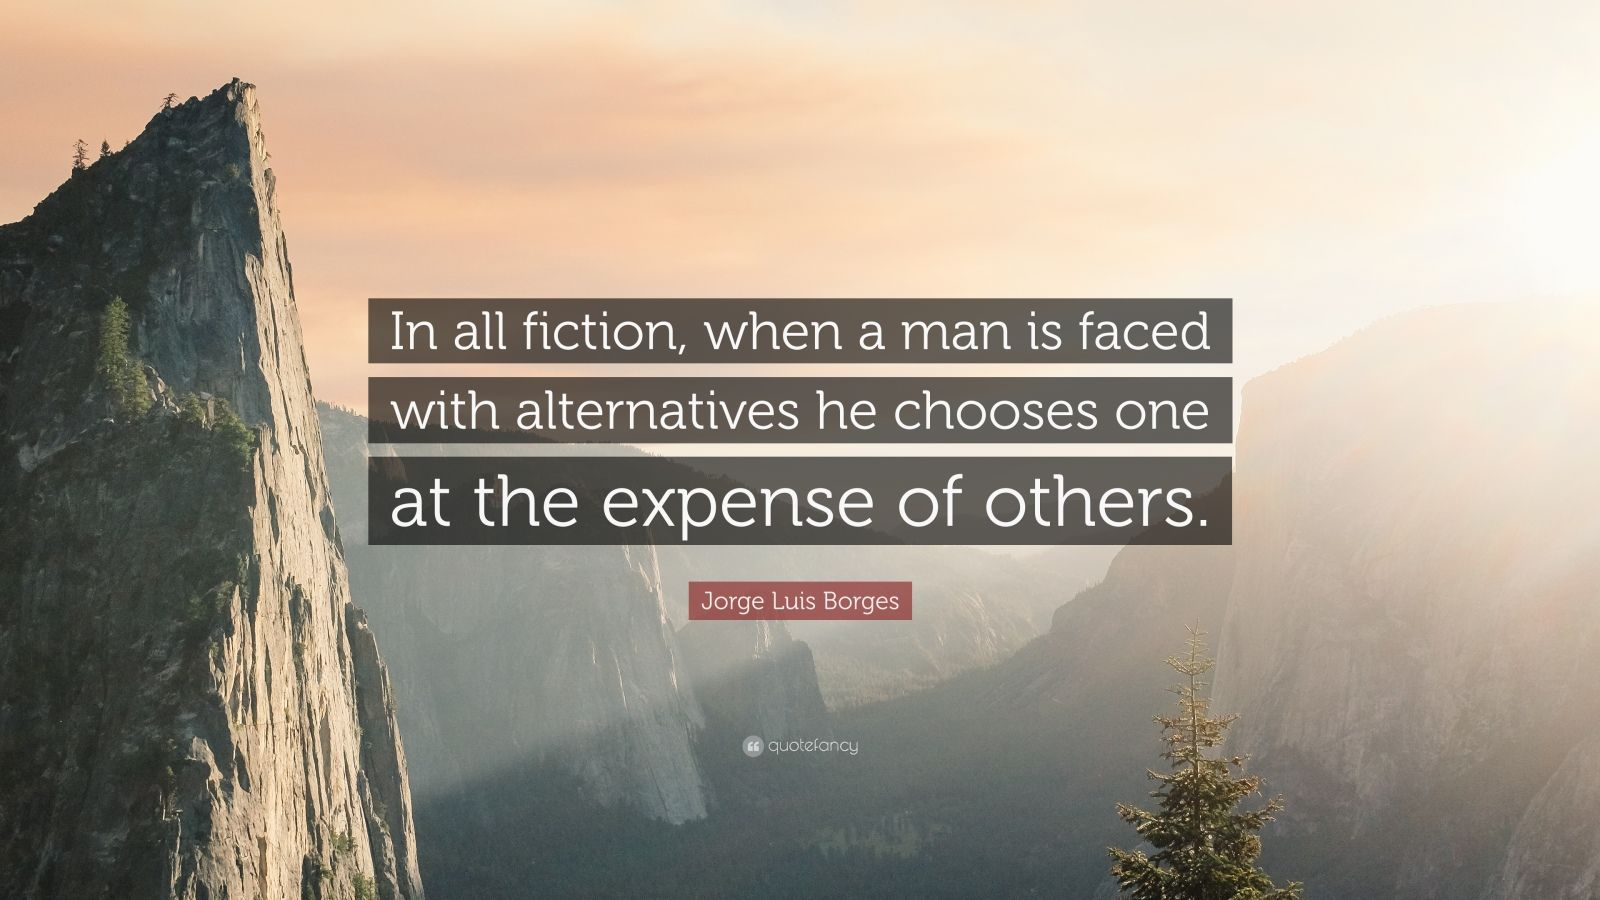 """Jorge Luis Borges Quote: """"In all fiction, when a man is faced with alternatives he chooses one at the expense of others."""""""